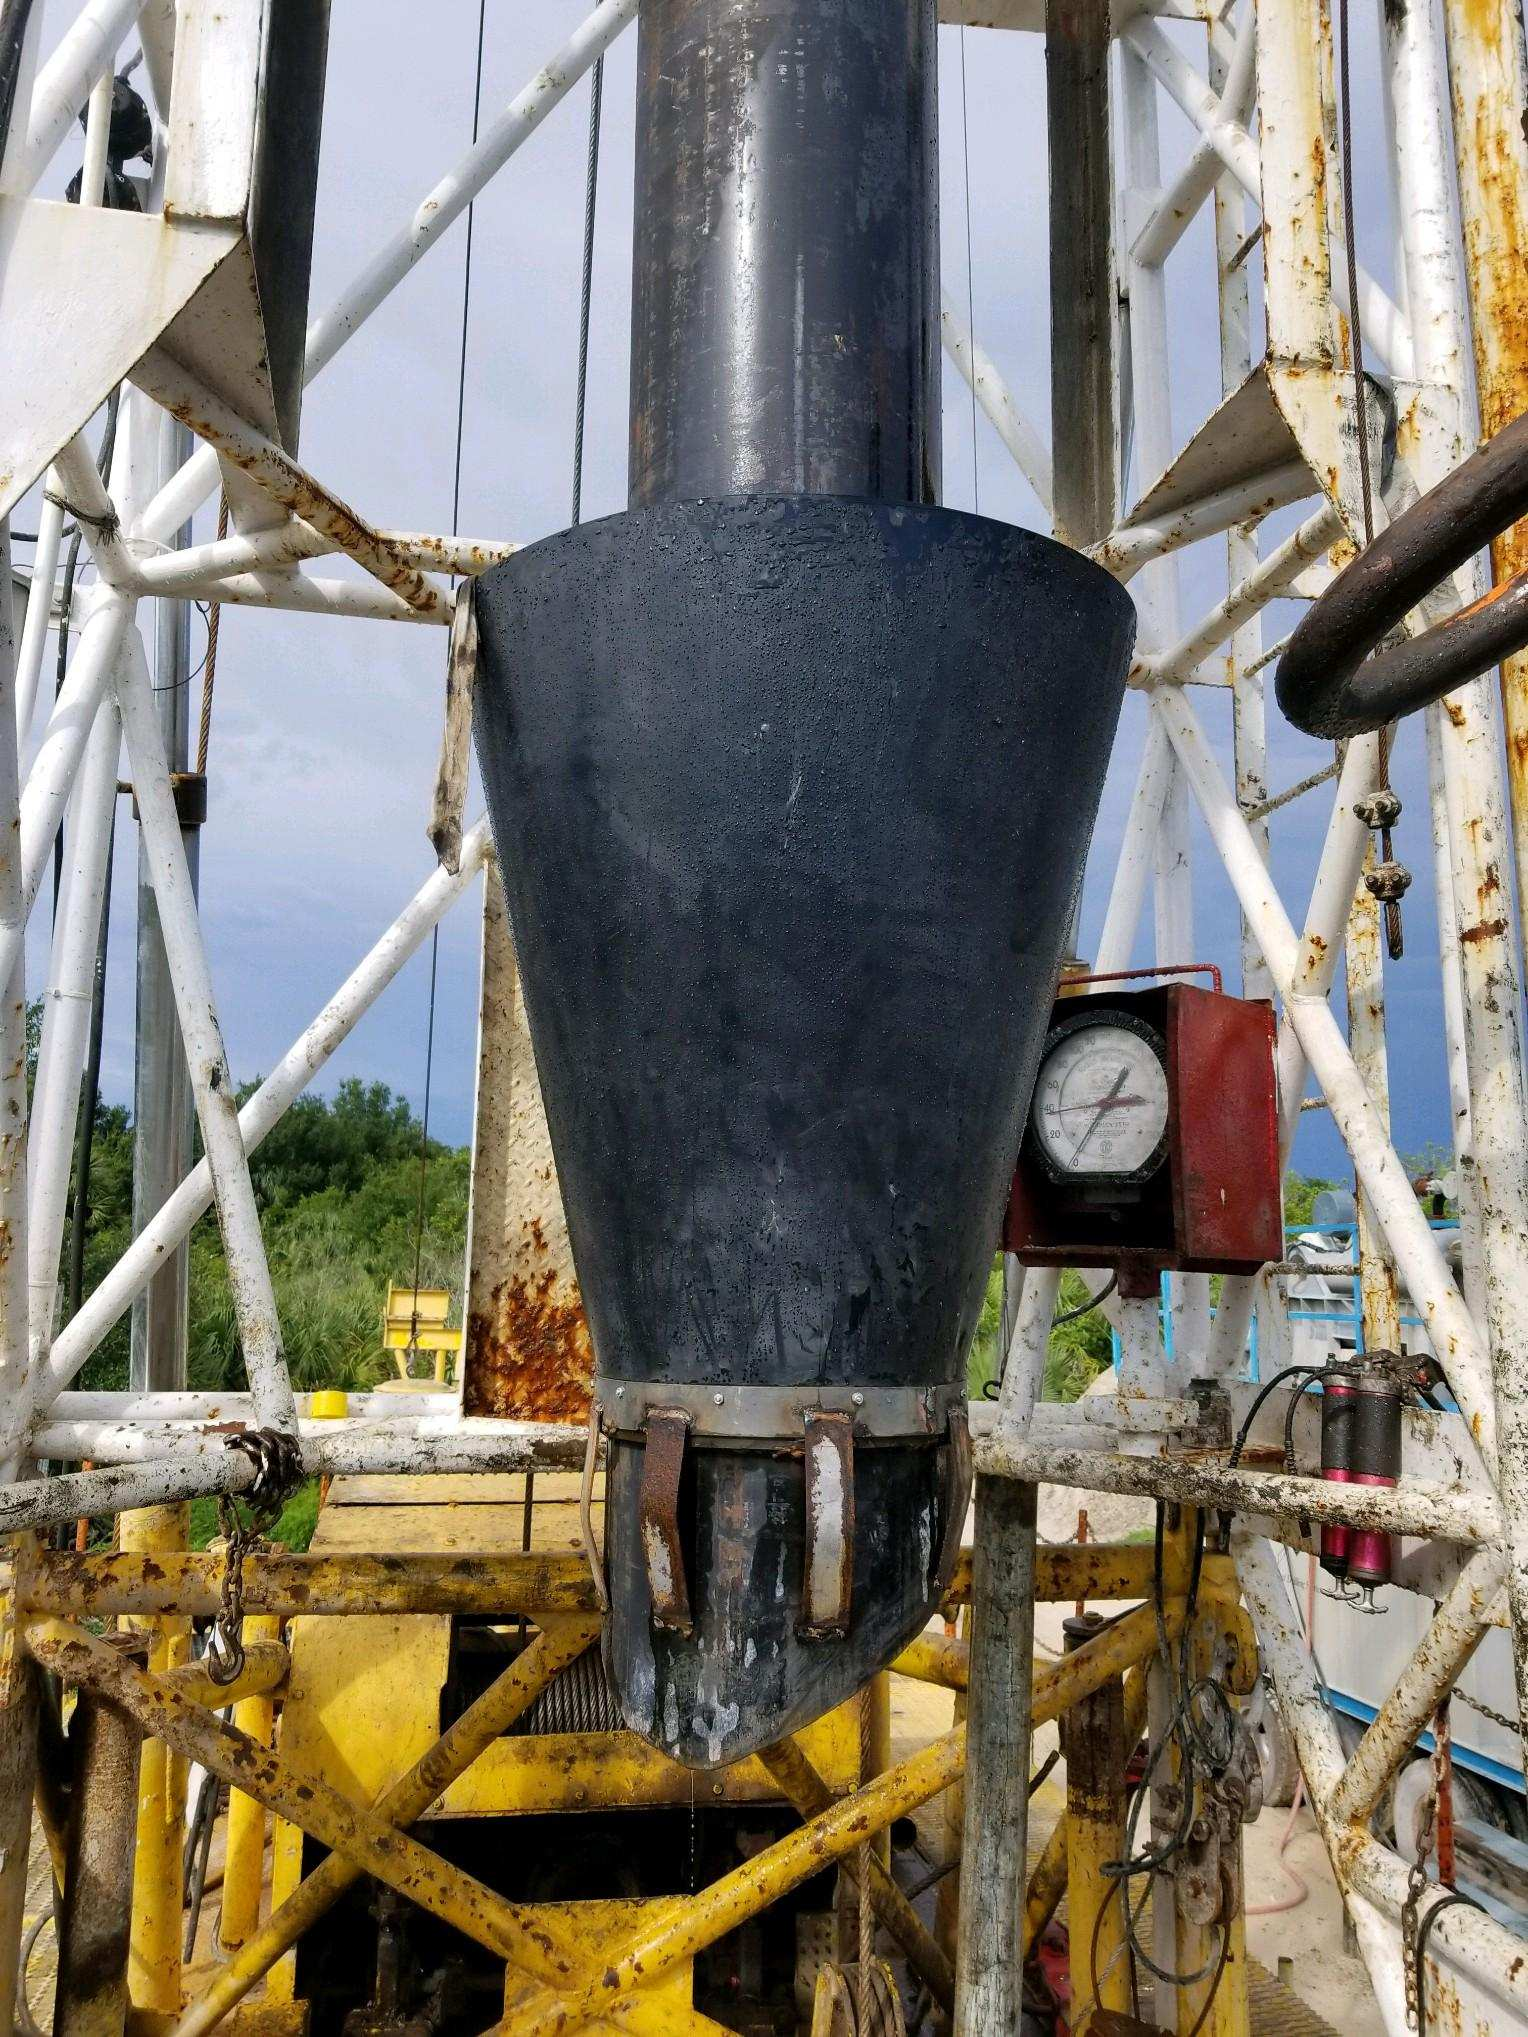 Conical Boot in Service